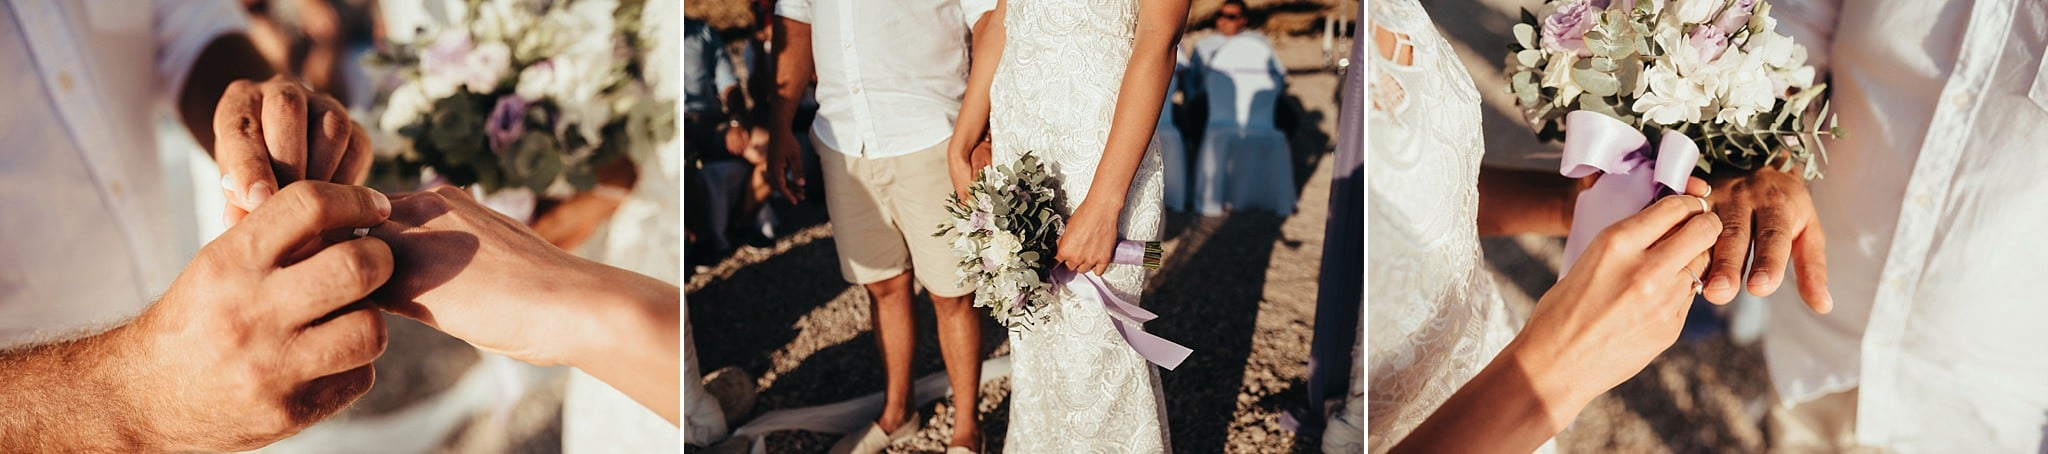 makarska wedding photographer croatia 017 - Dalmatia Wedding Photographer | Adrienn & Attila